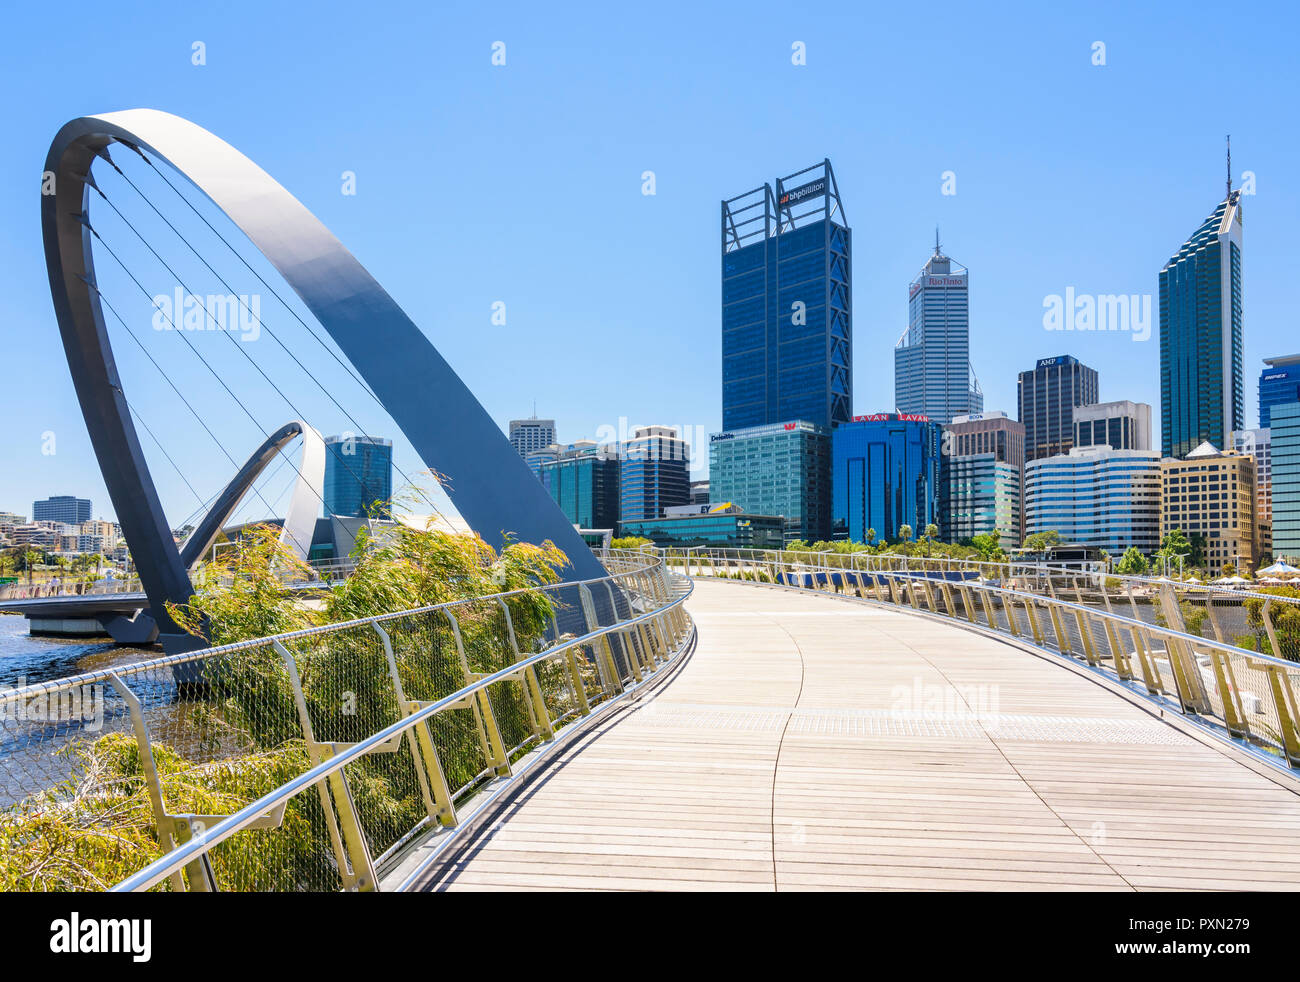 The Elizabeth Quay Bridge, with the Perth CBD behind, Elizabeth Quay, Perth, Western Australia - Stock Image